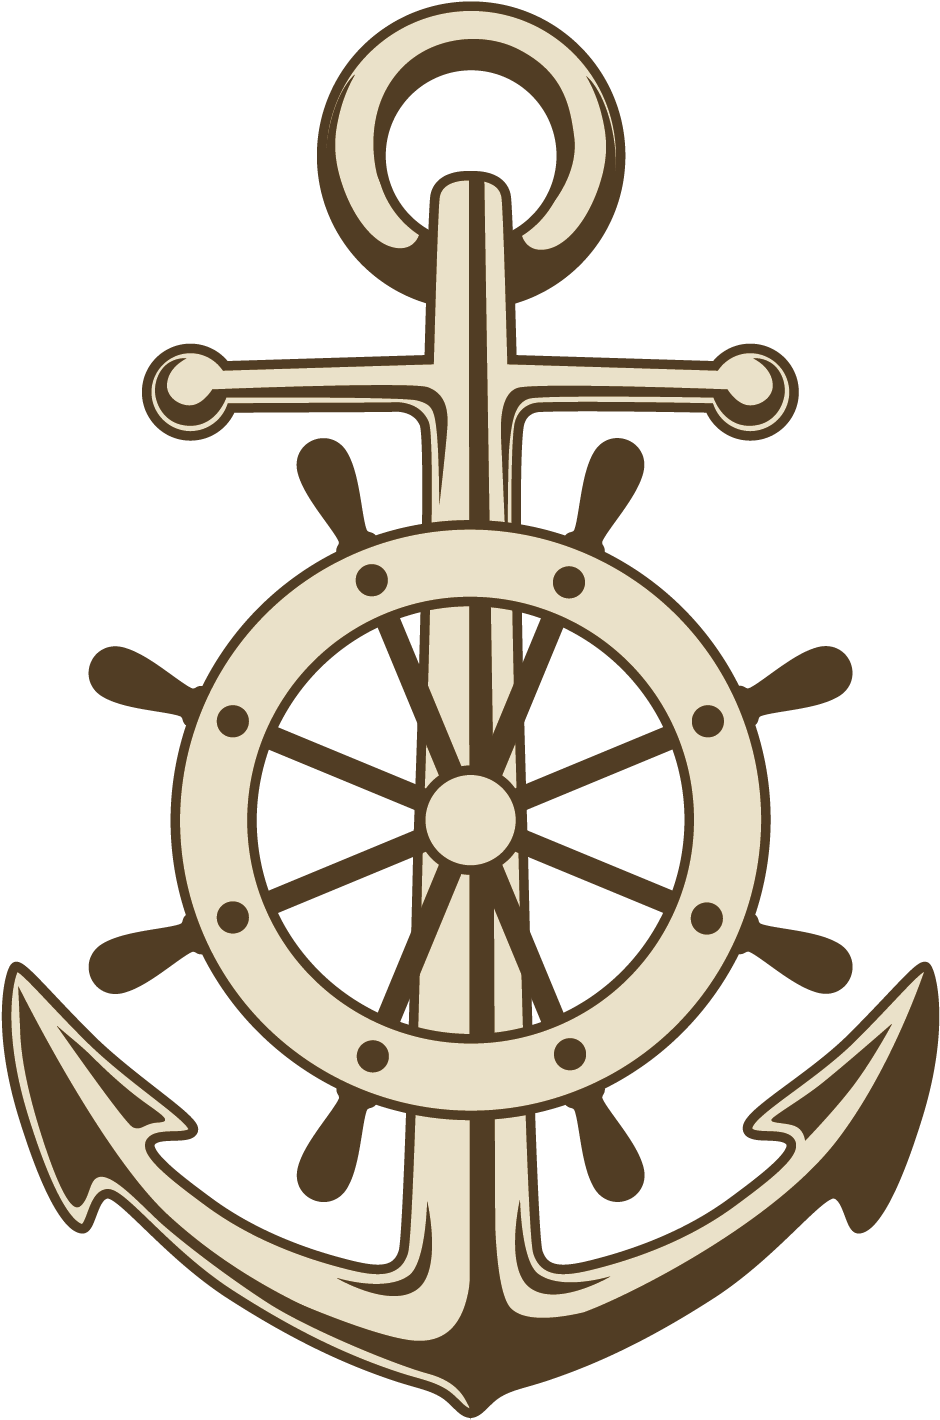 Steering clipart. Download hd england anchor